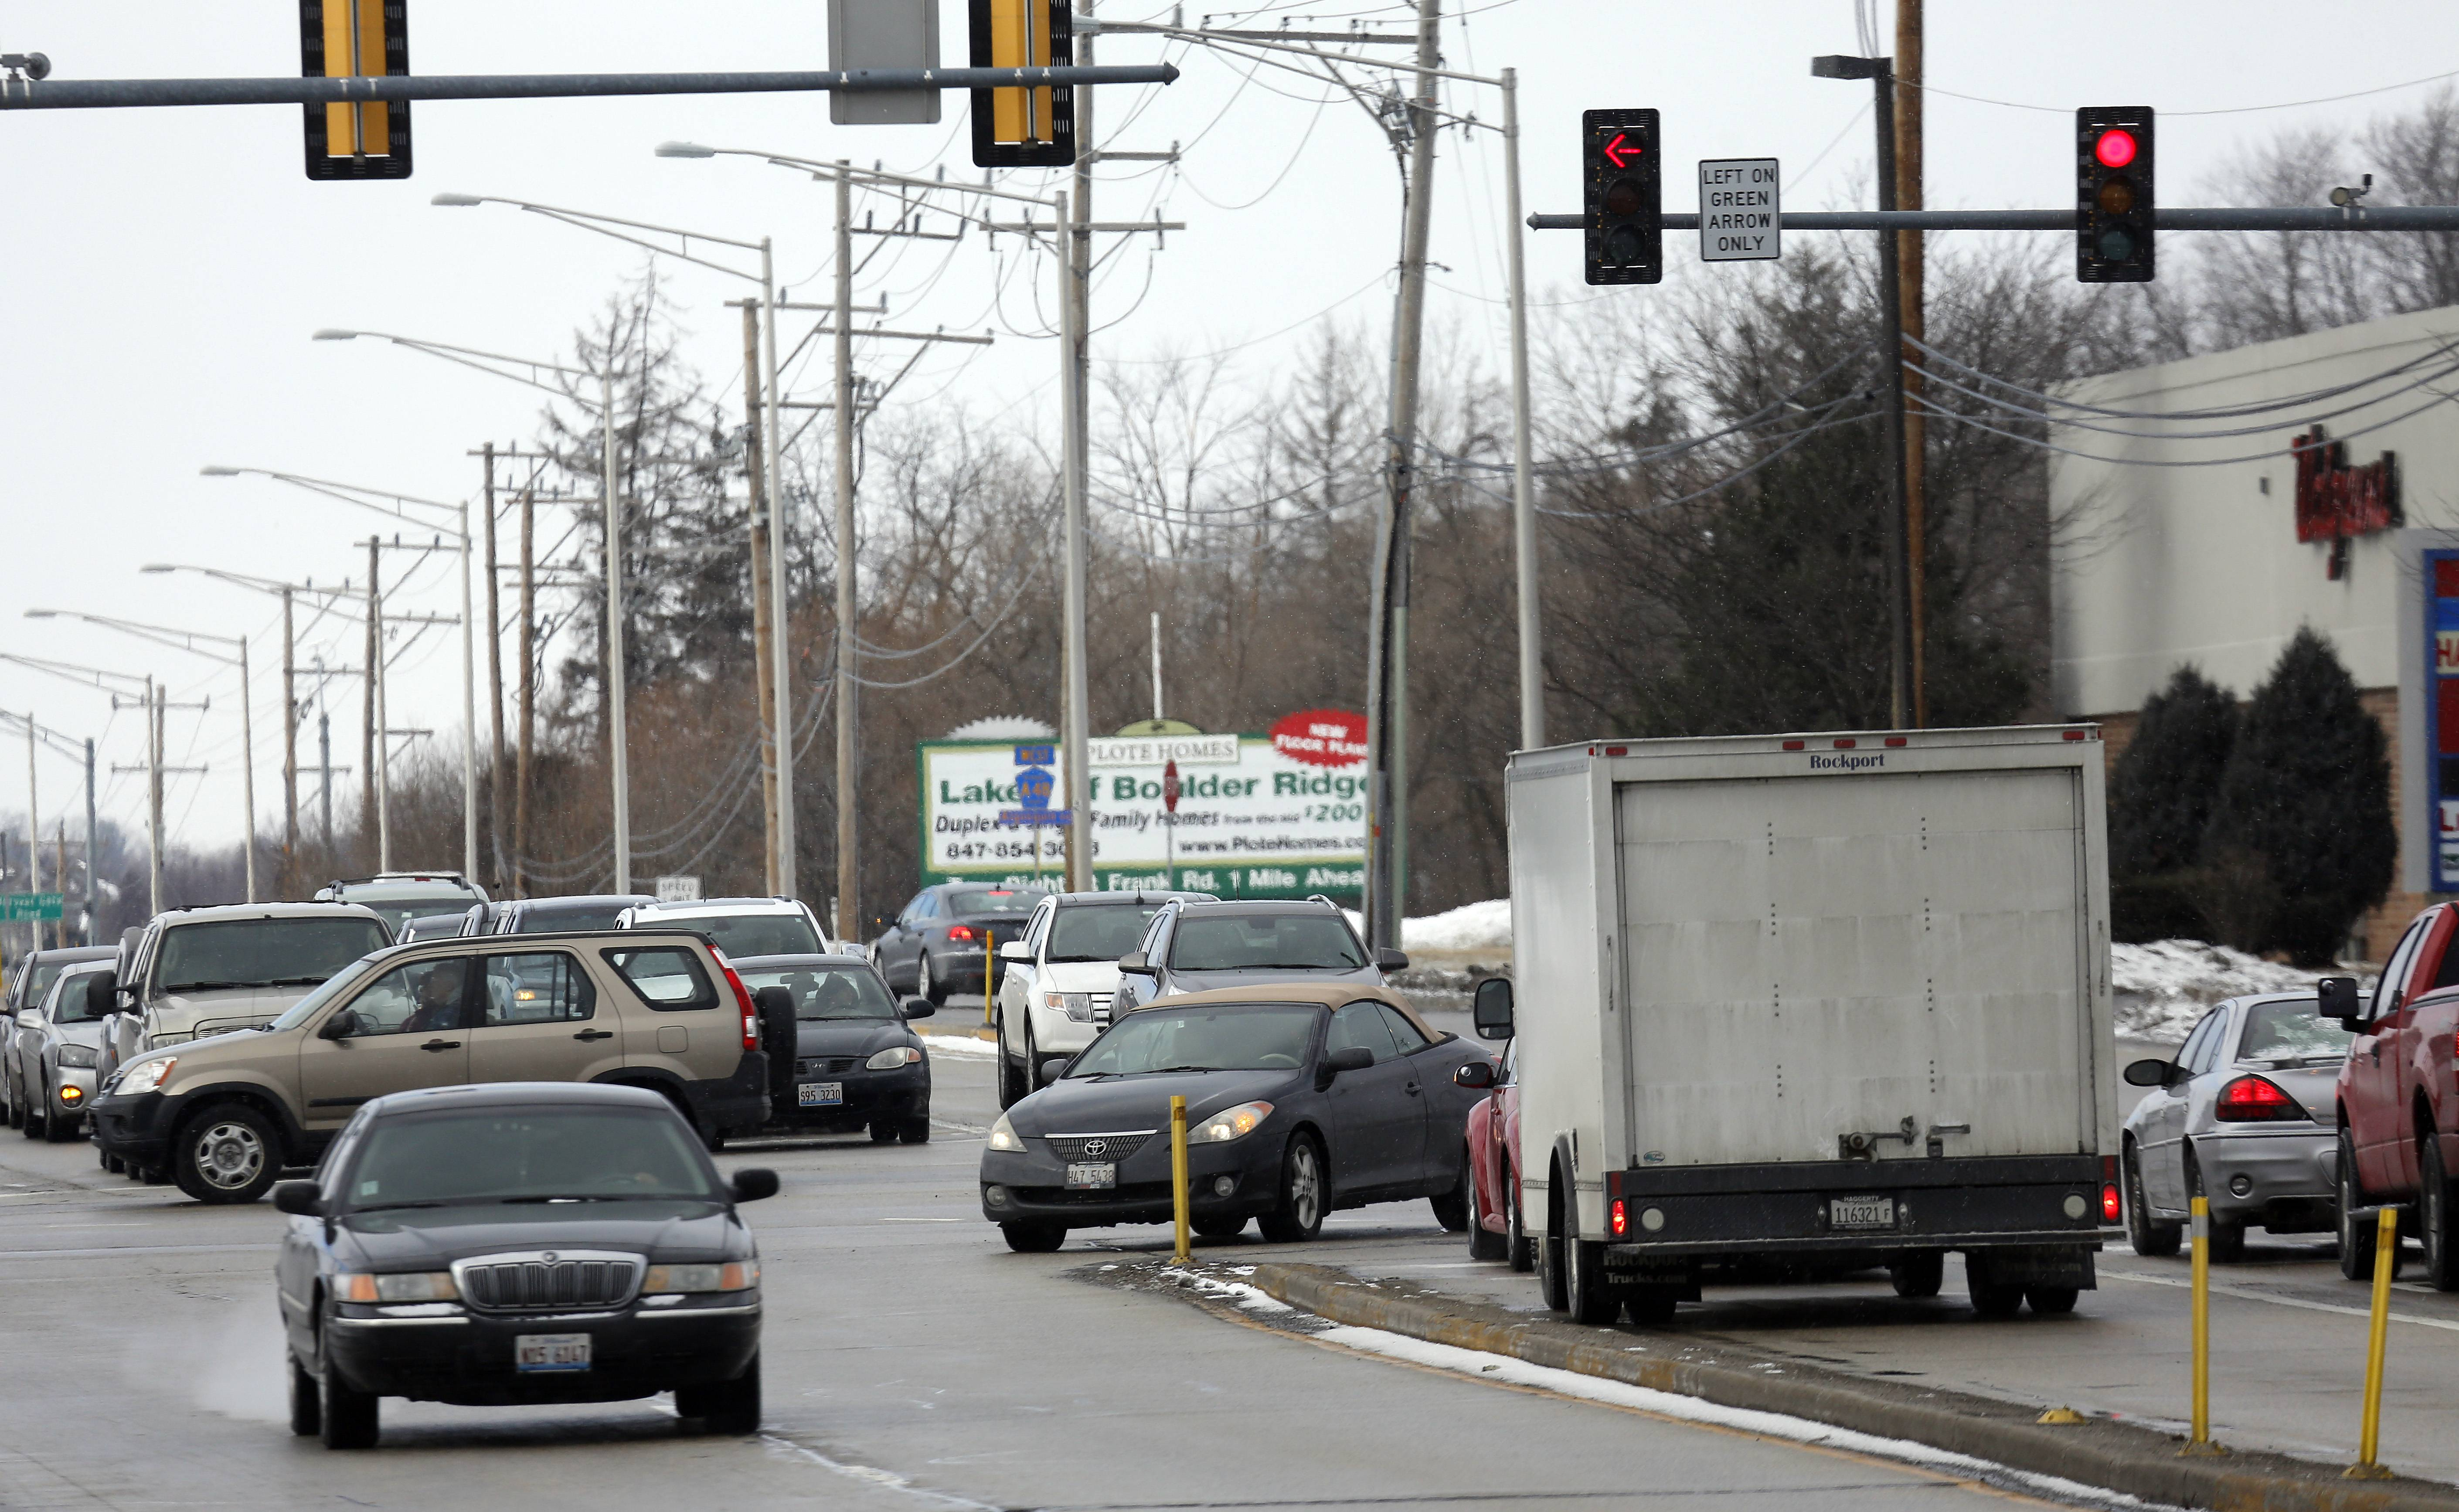 Village: Intersection project could cost $36 million more than alternative